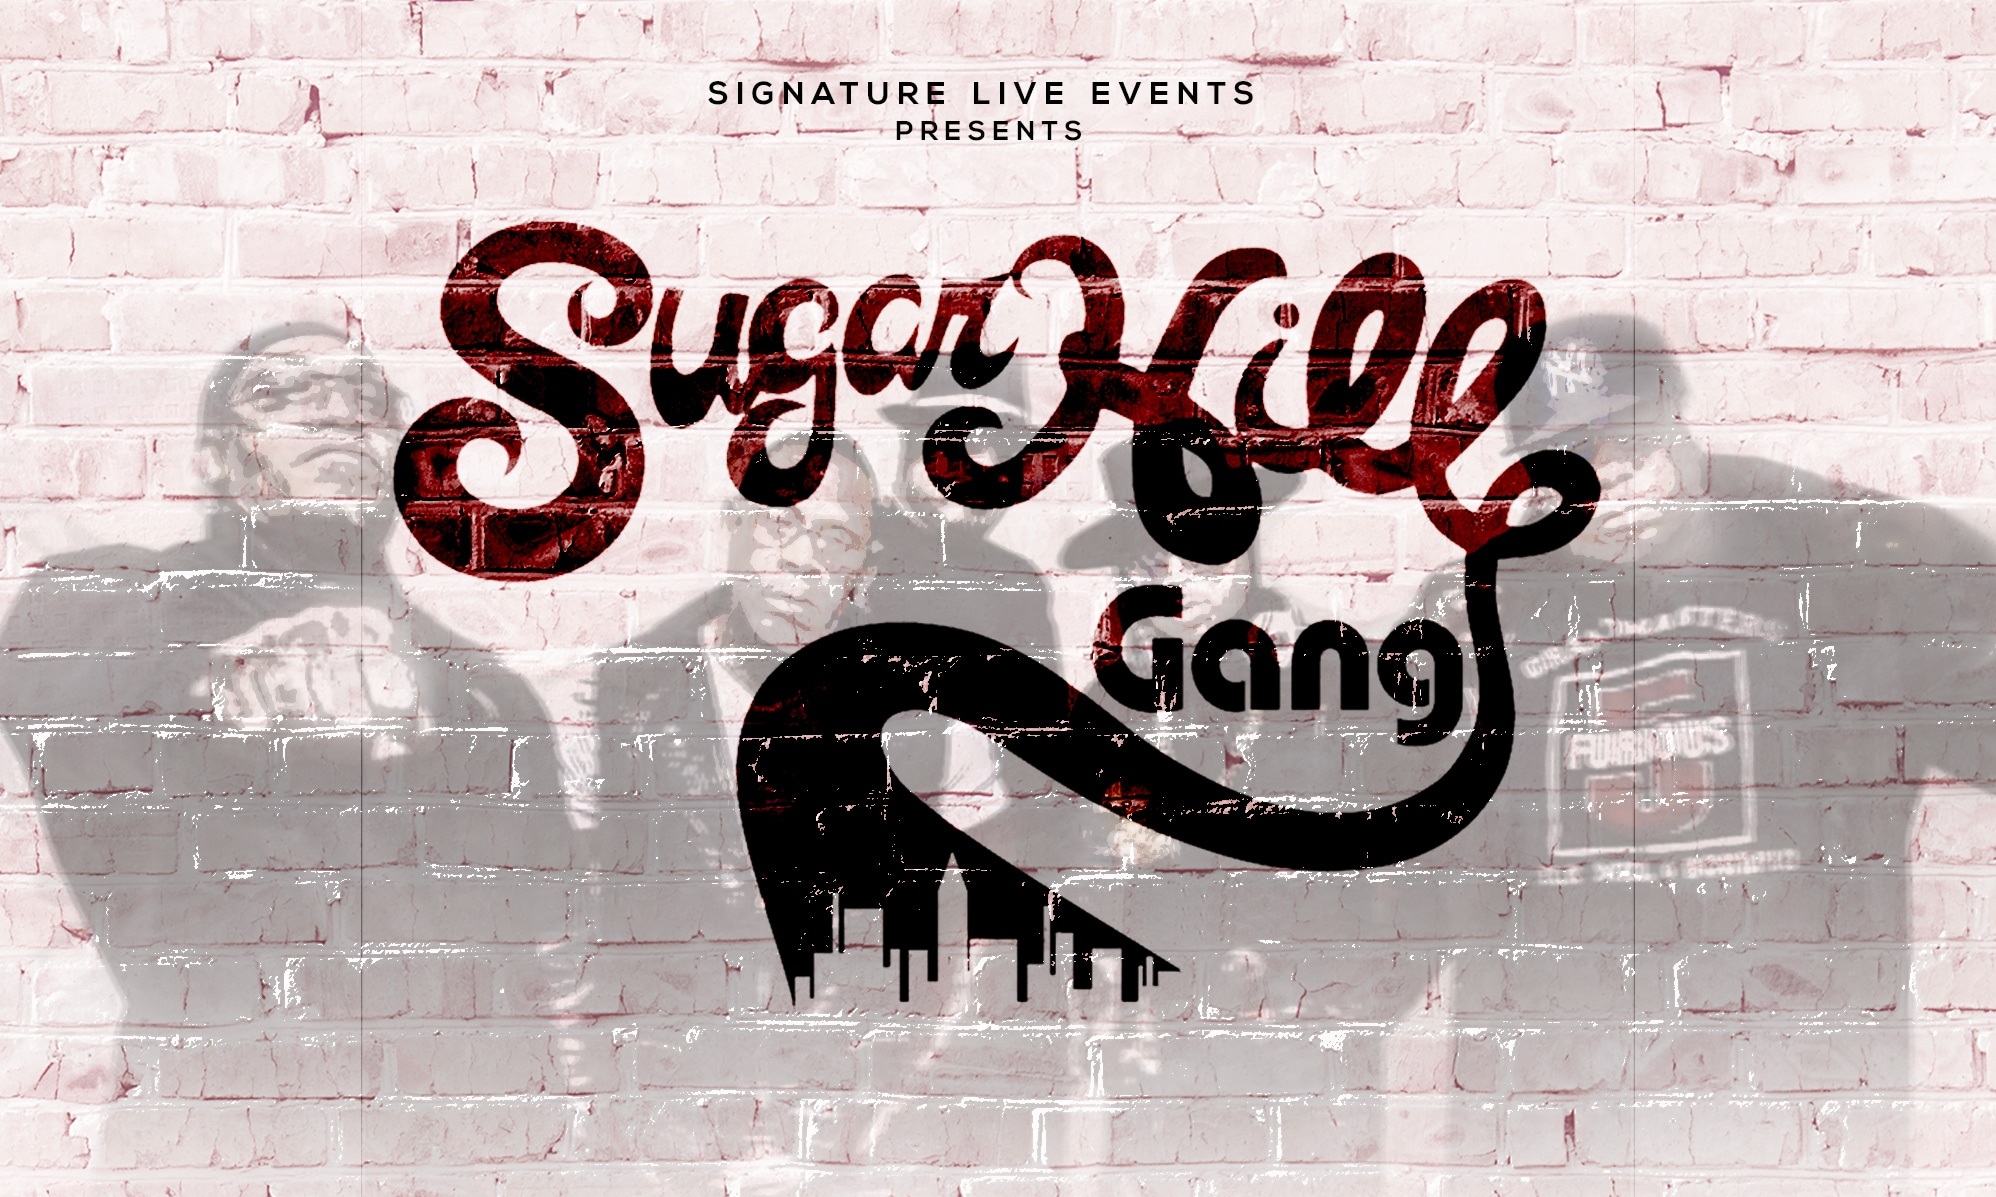 sugarhill gang - live music event liverpool